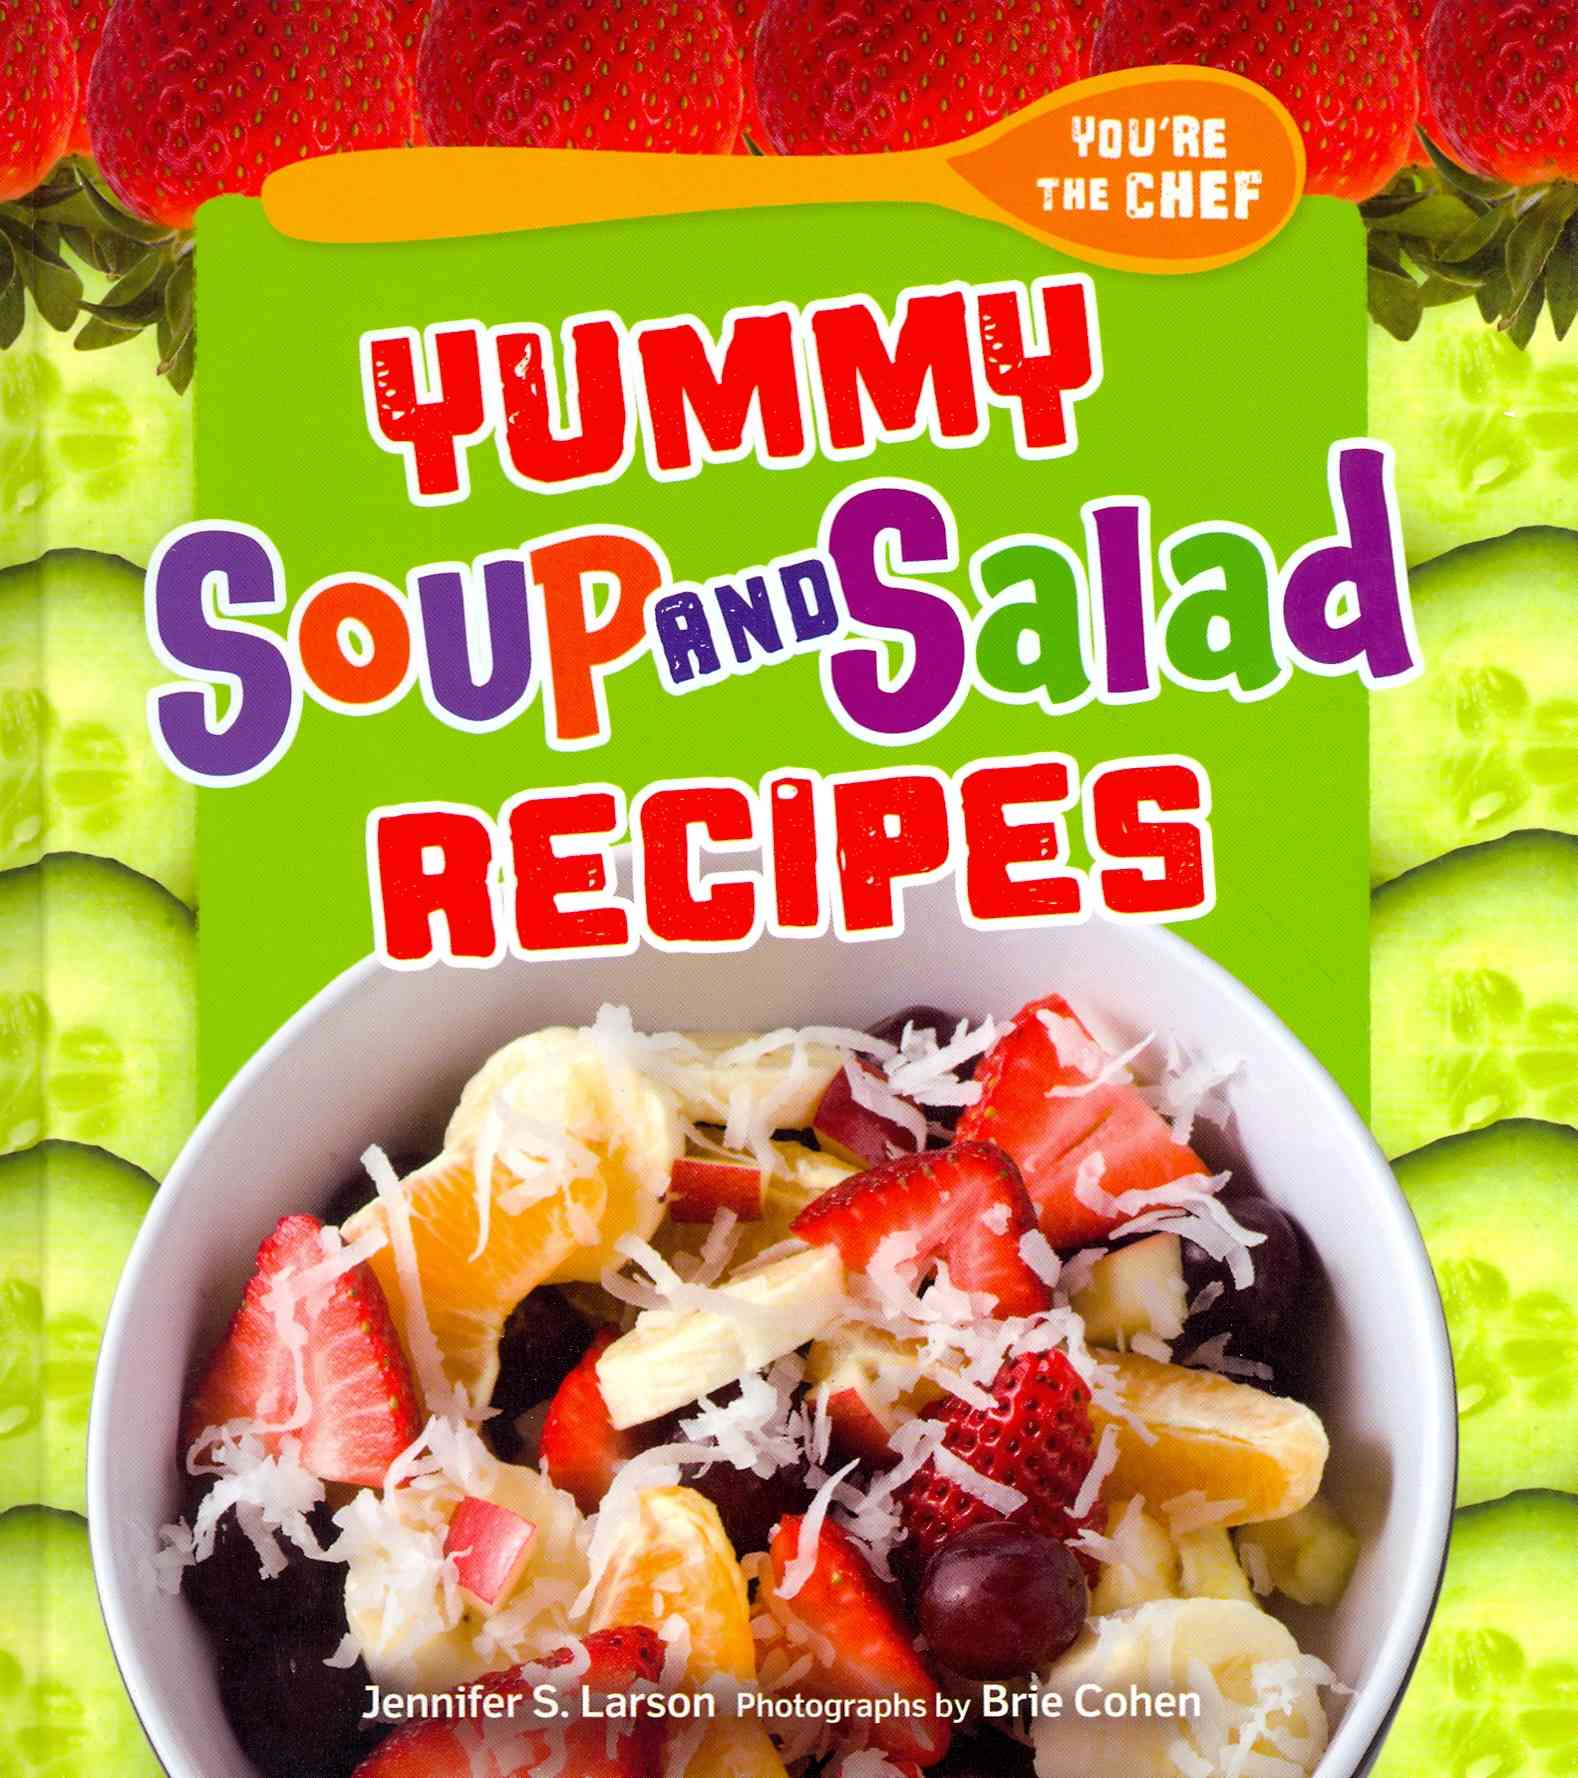 Yummy Soup and Salad Recipes By Larson, Jennifer S.